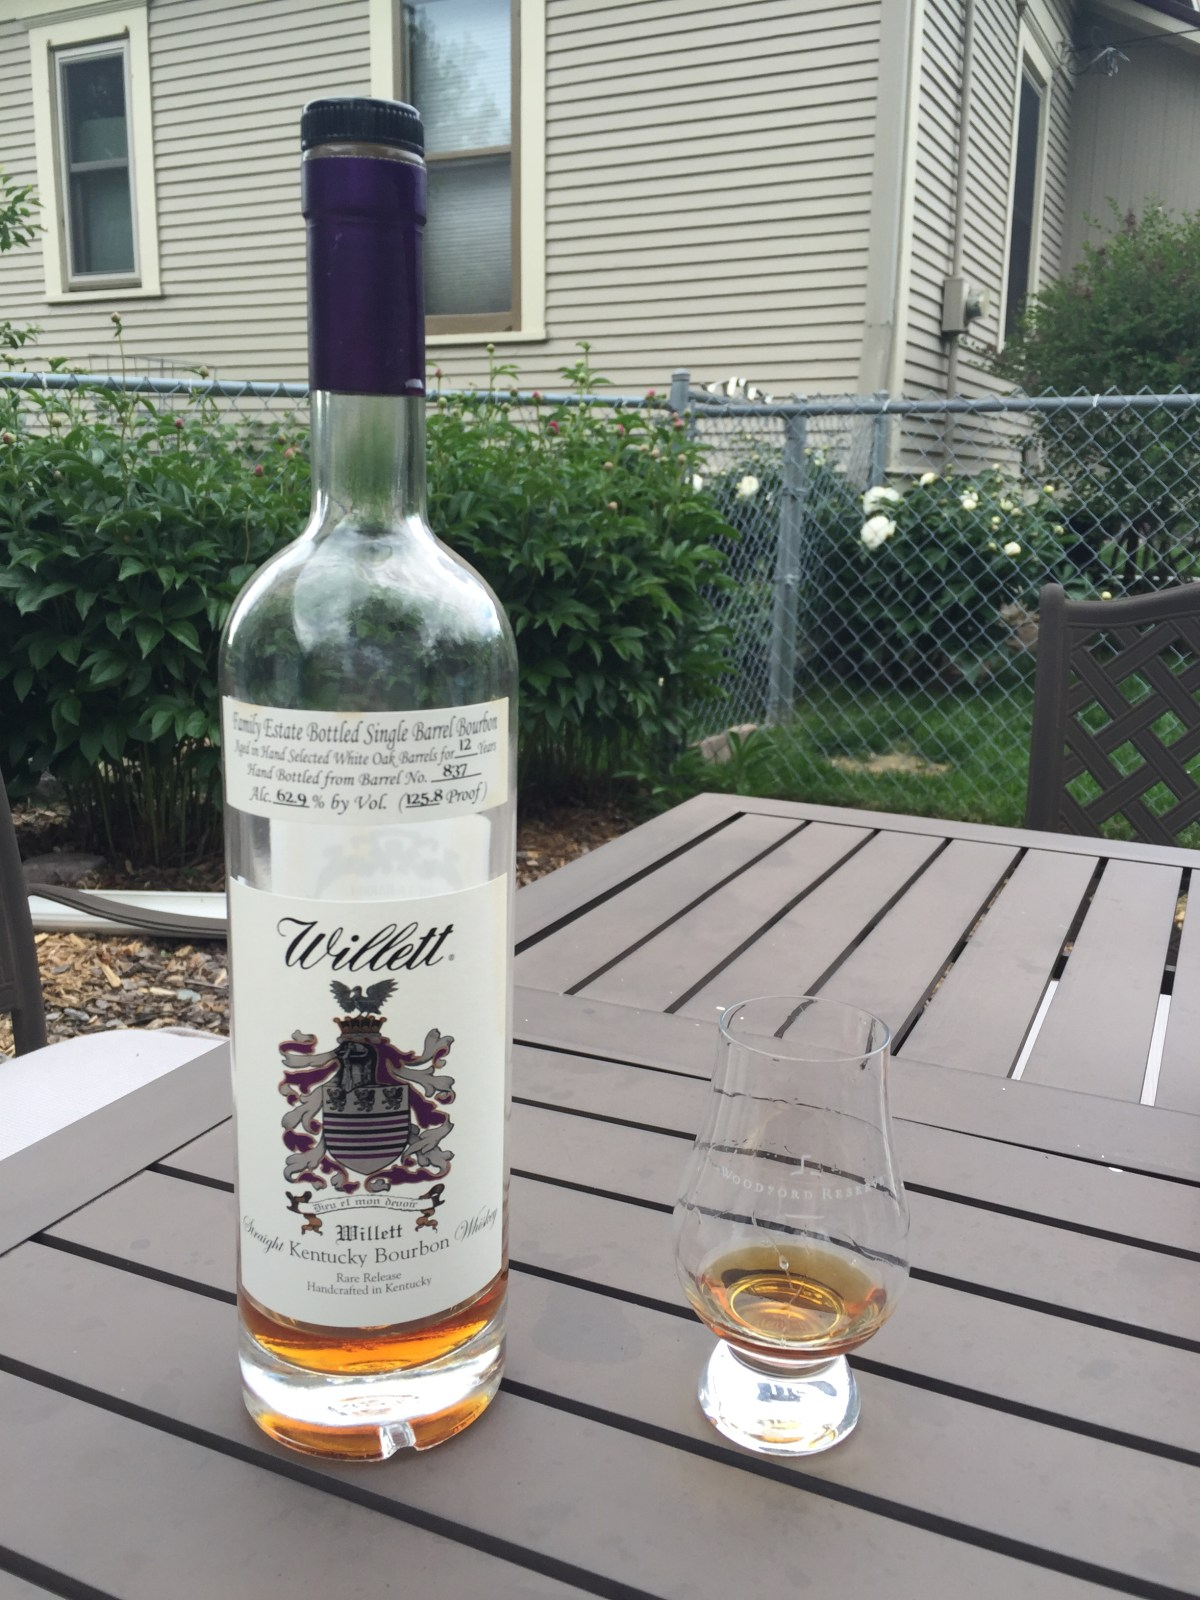 Willett 12 Bourbon (Gift Shop Barrel 837) Review